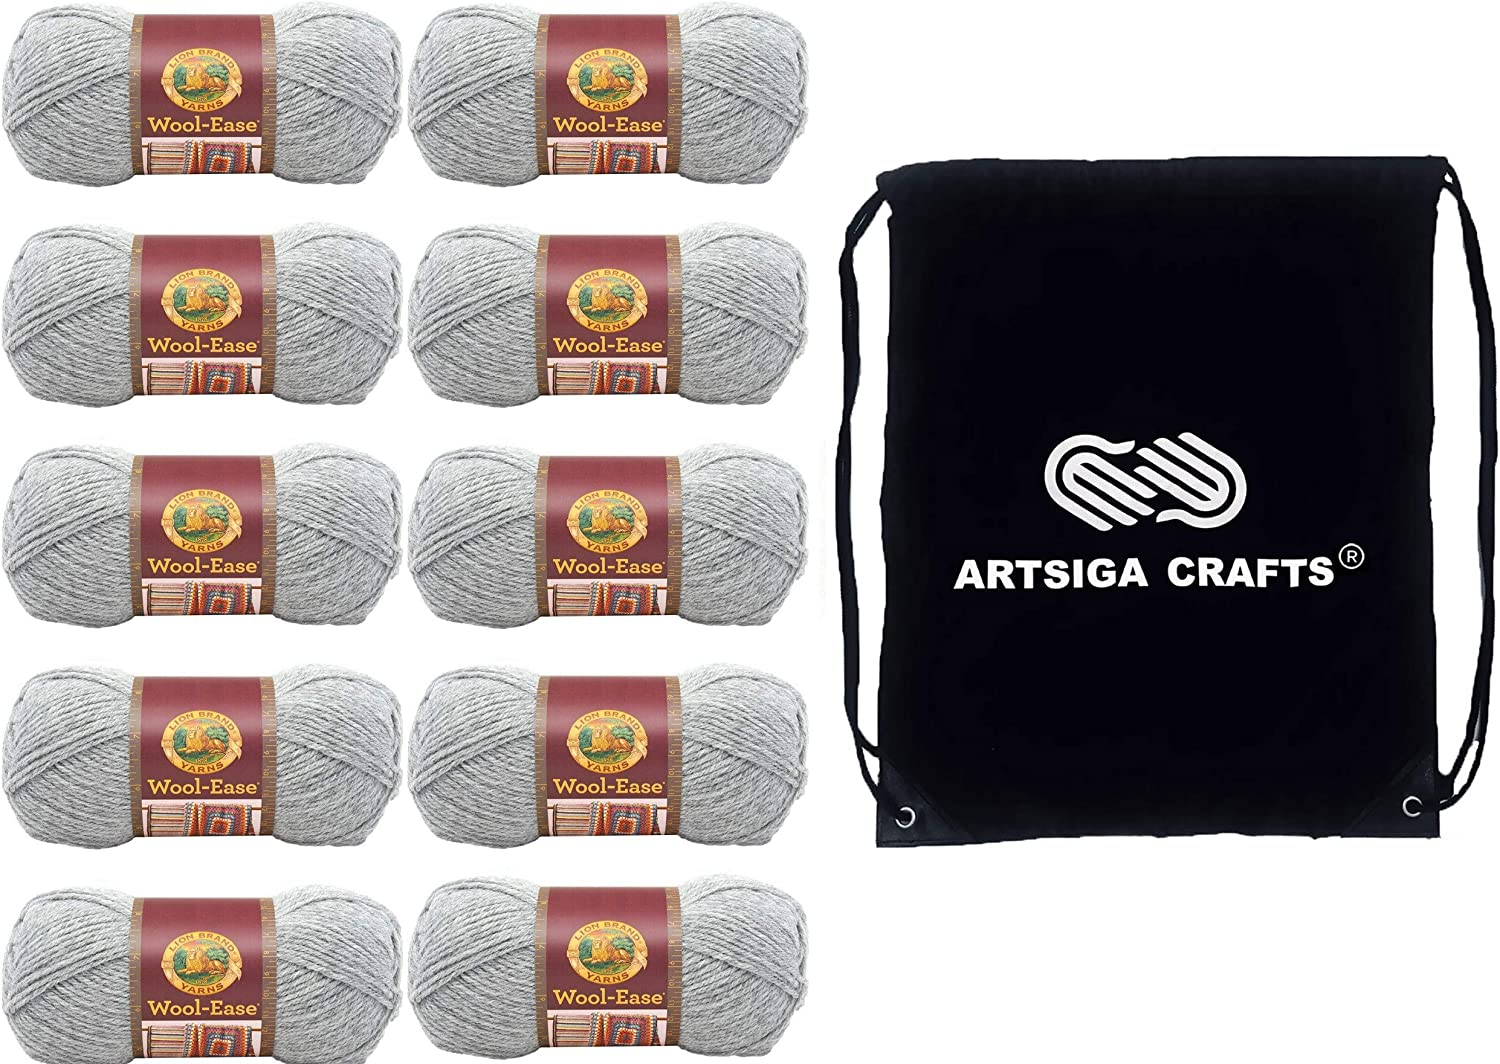 Lion service Brand Knitting Yarn Wool-Ease Grey Heather 10-Skein Max 83% OFF Factory